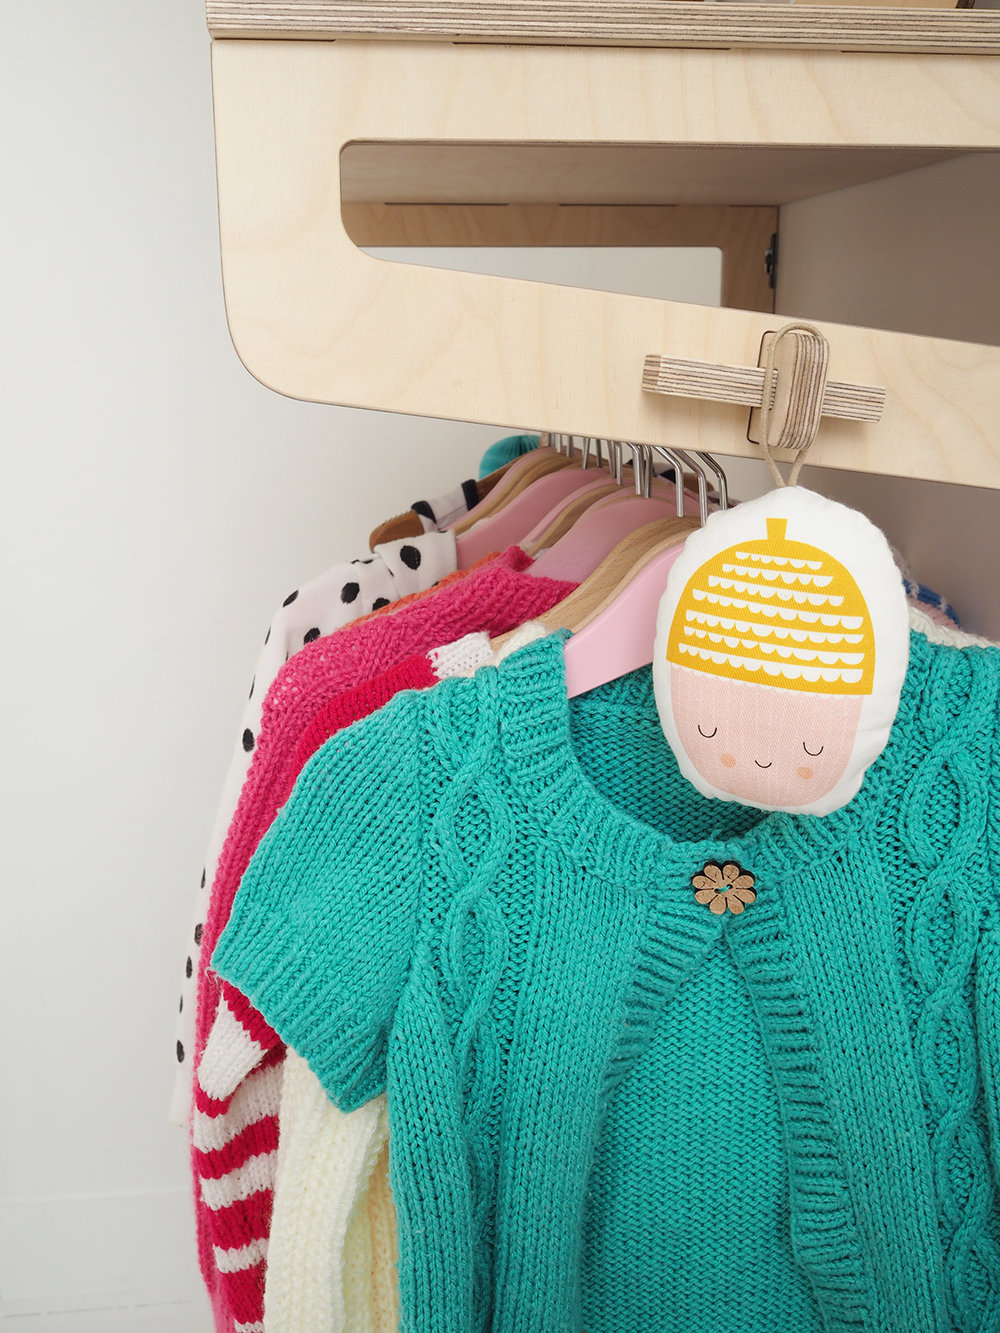 hanging decoration is by Hesperoo, but doesn't seem to be available anymore; Hangers, £3 for 5, Ikea; Knitwear by Ruby's nanny!